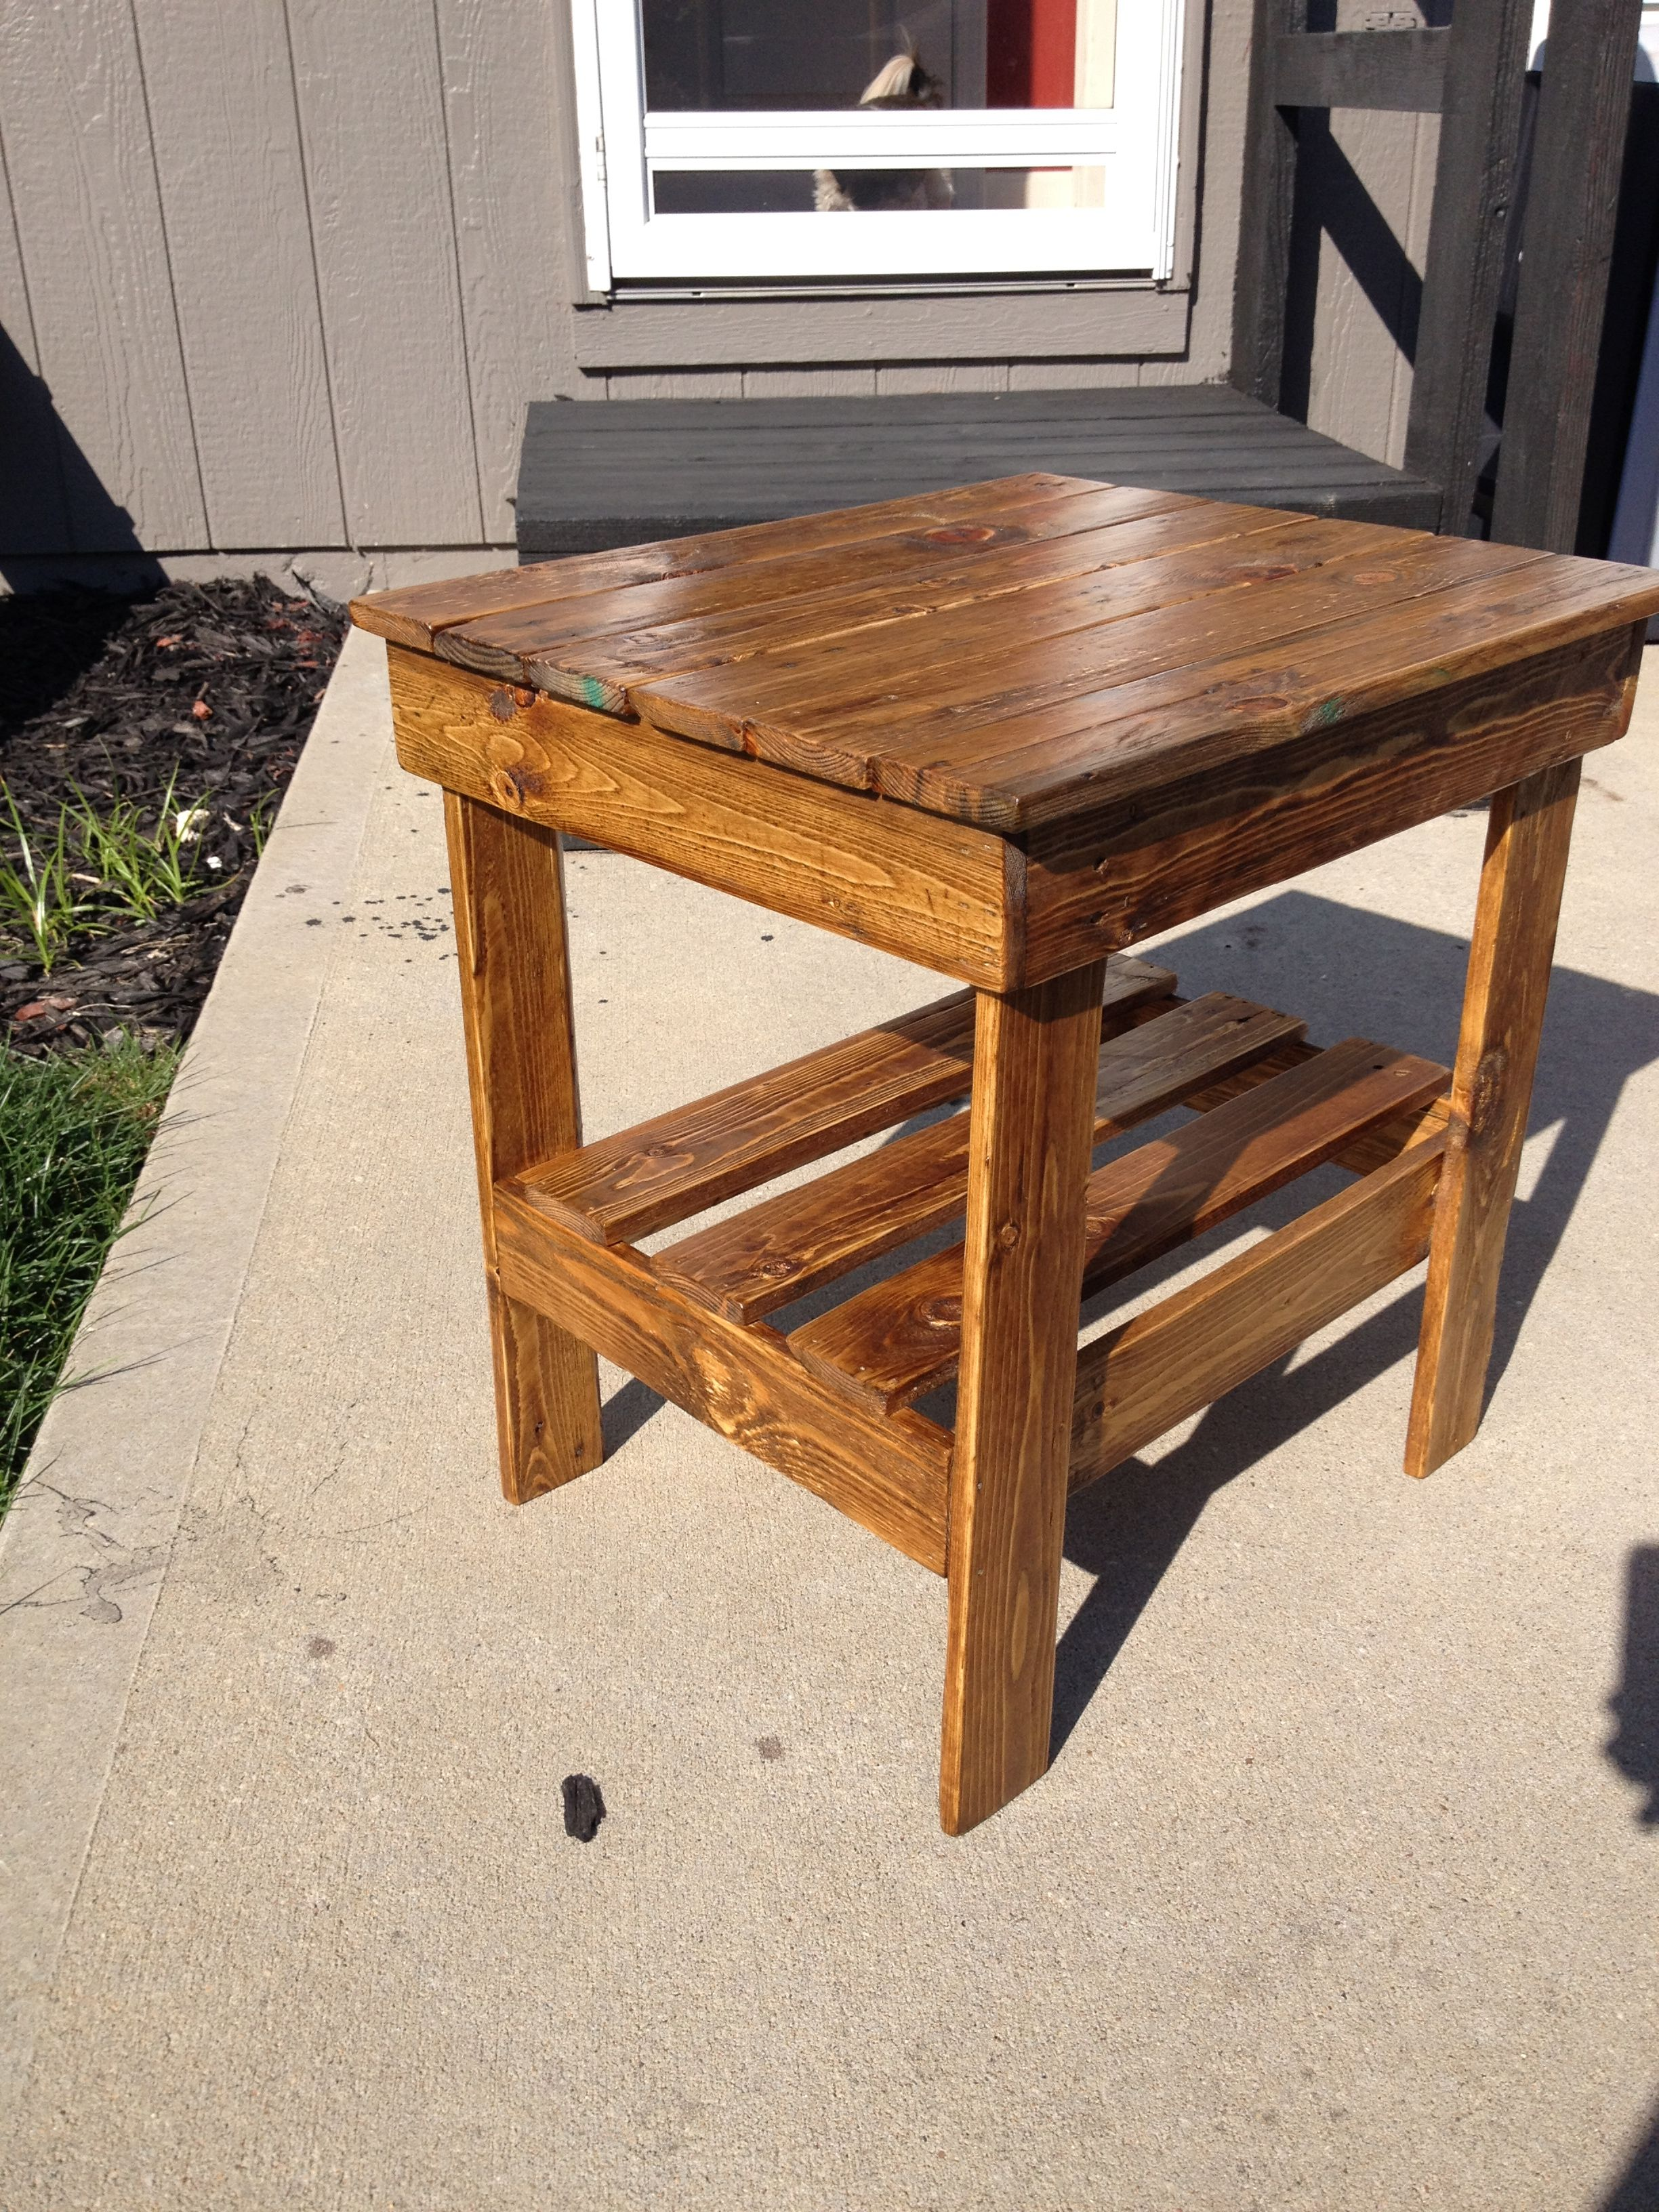 My First End Table Made Out Of Pallets Time To Make A Few More